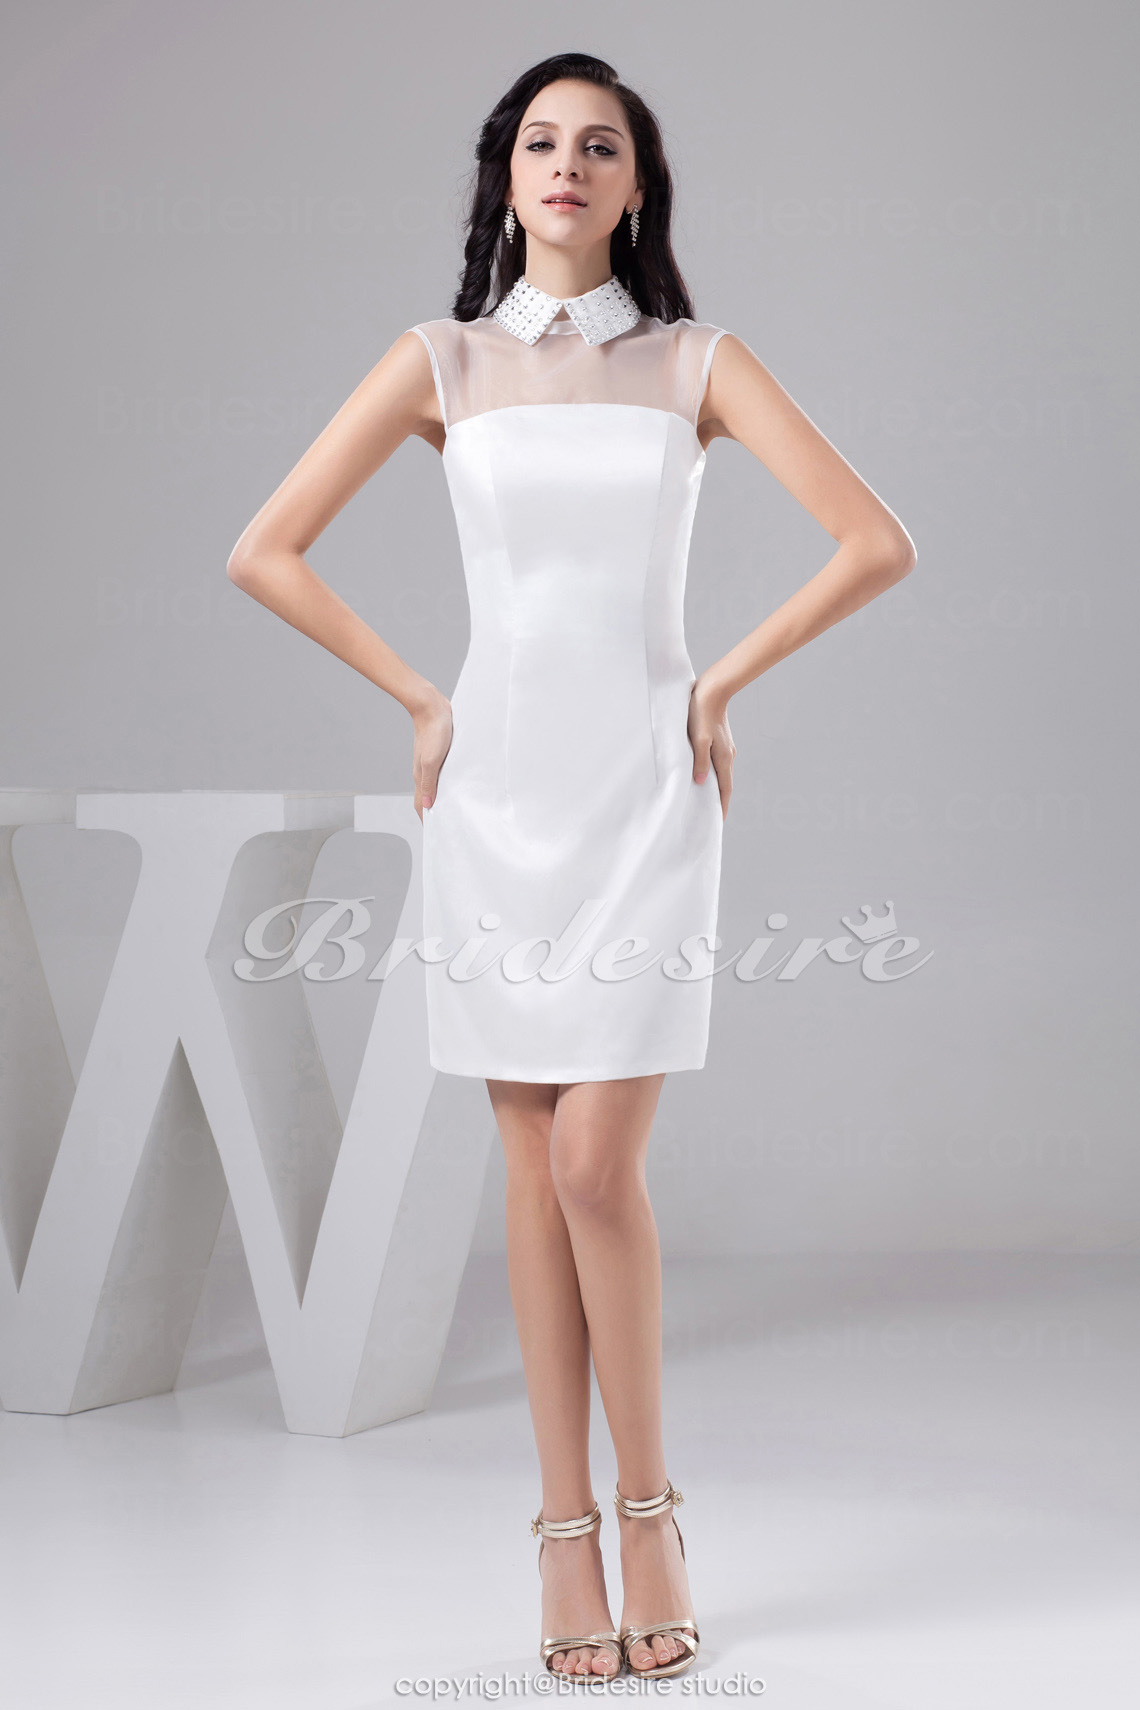 Sheath/Column High Neck Short/Mini Sleeveless Organza Satin Dress